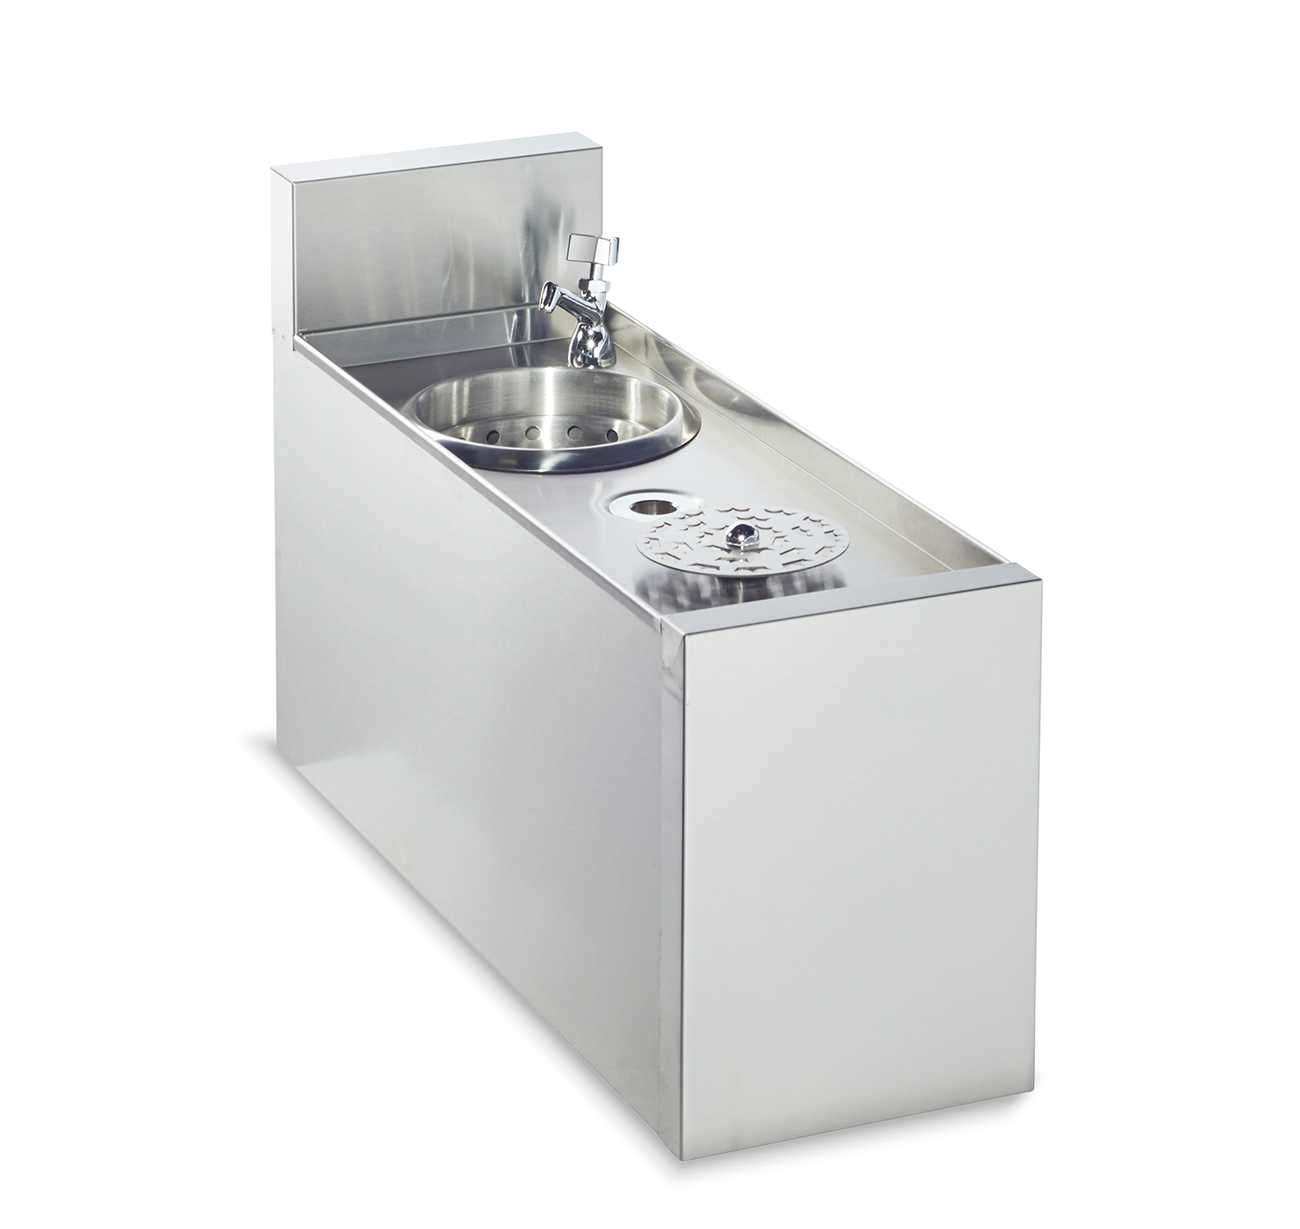 Krowne Metal KR18-MS8 underbar sink units